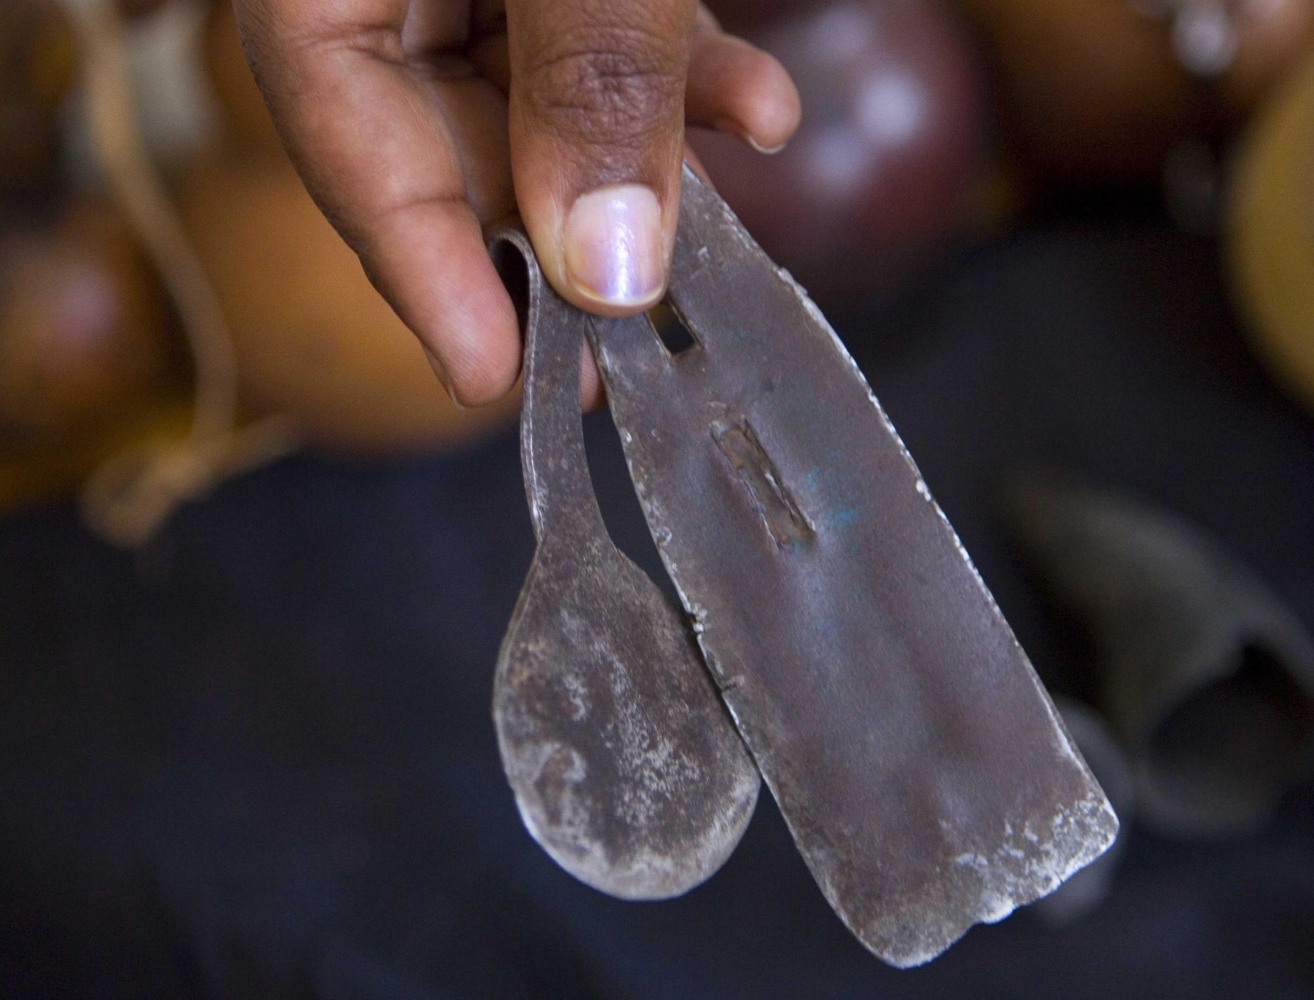 female mutilation Female genital mutilation (fgm), also known as female genital cutting and female circumcision, is the ritual cutting or removal of some or all of the.